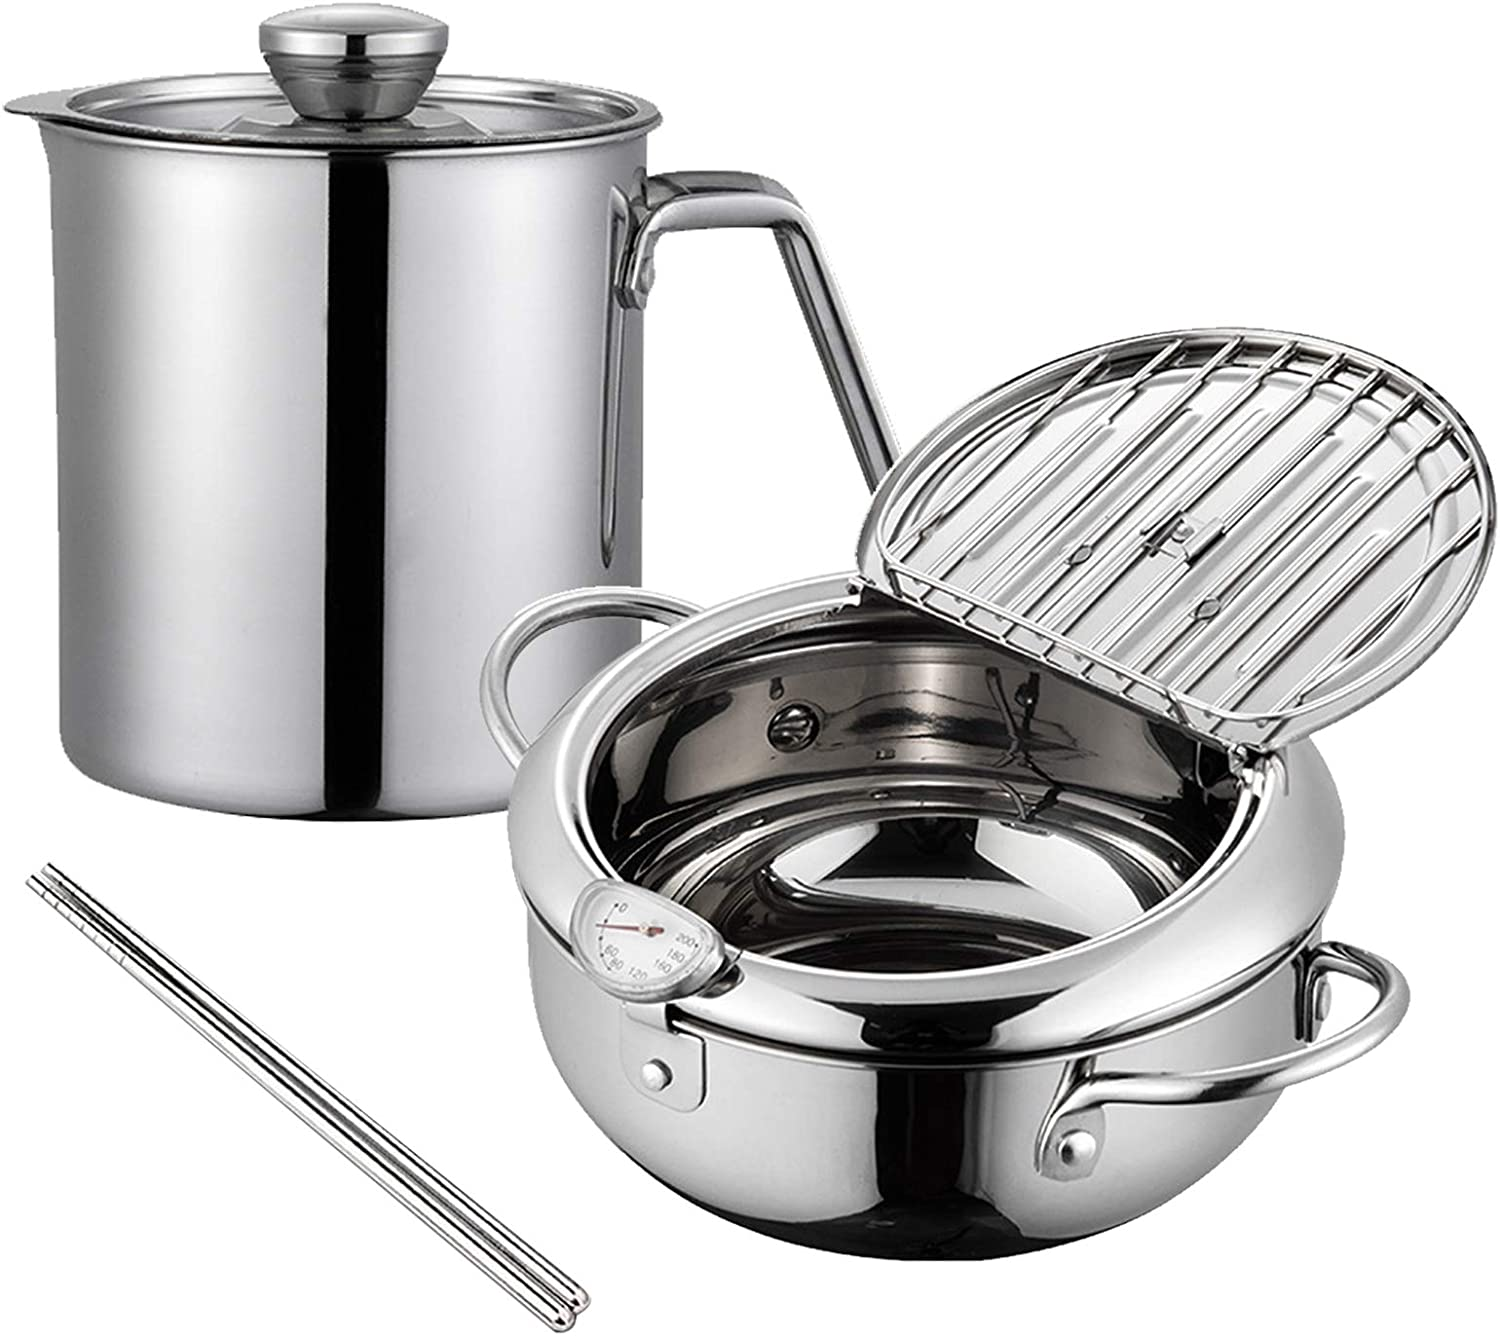 Stainless Steel Fryer Pan Tempura Japanese Style Household Frying Pot with Thermometer Kitchen Deep Fryers Tempura Fryer Pan (9.75.5in 3.4L&1.8L Filter pot,304 stainless steel)